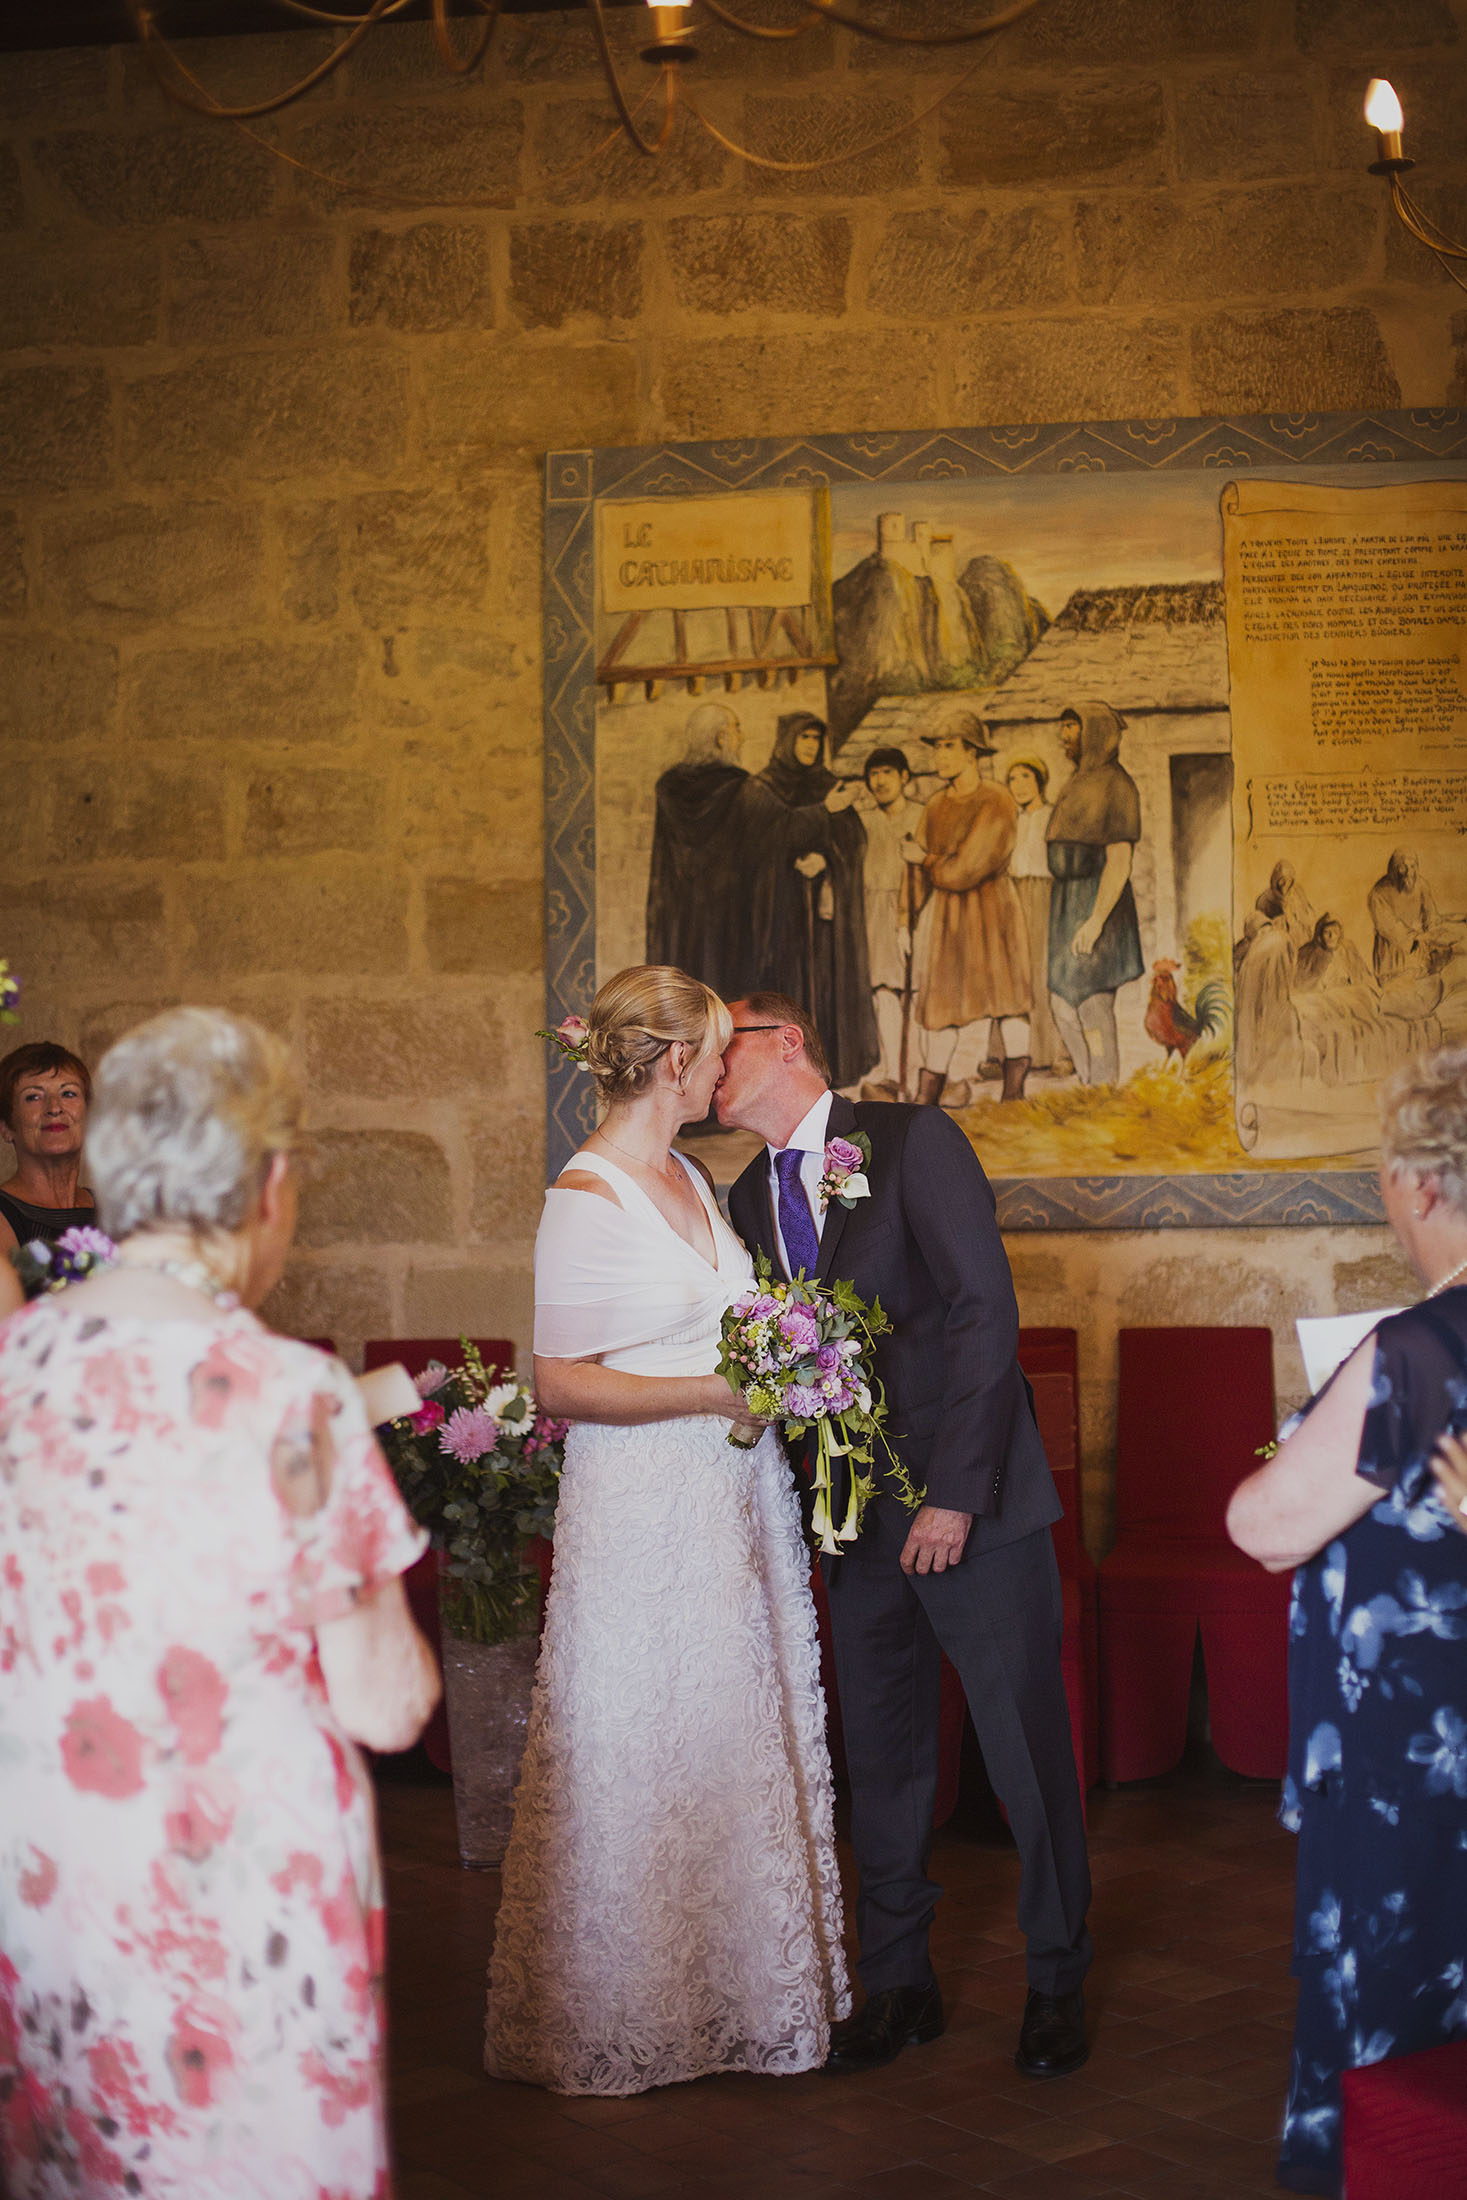 first kiss wedding ceremony at chateaux des ducs de joyeuses france destination wedding photography